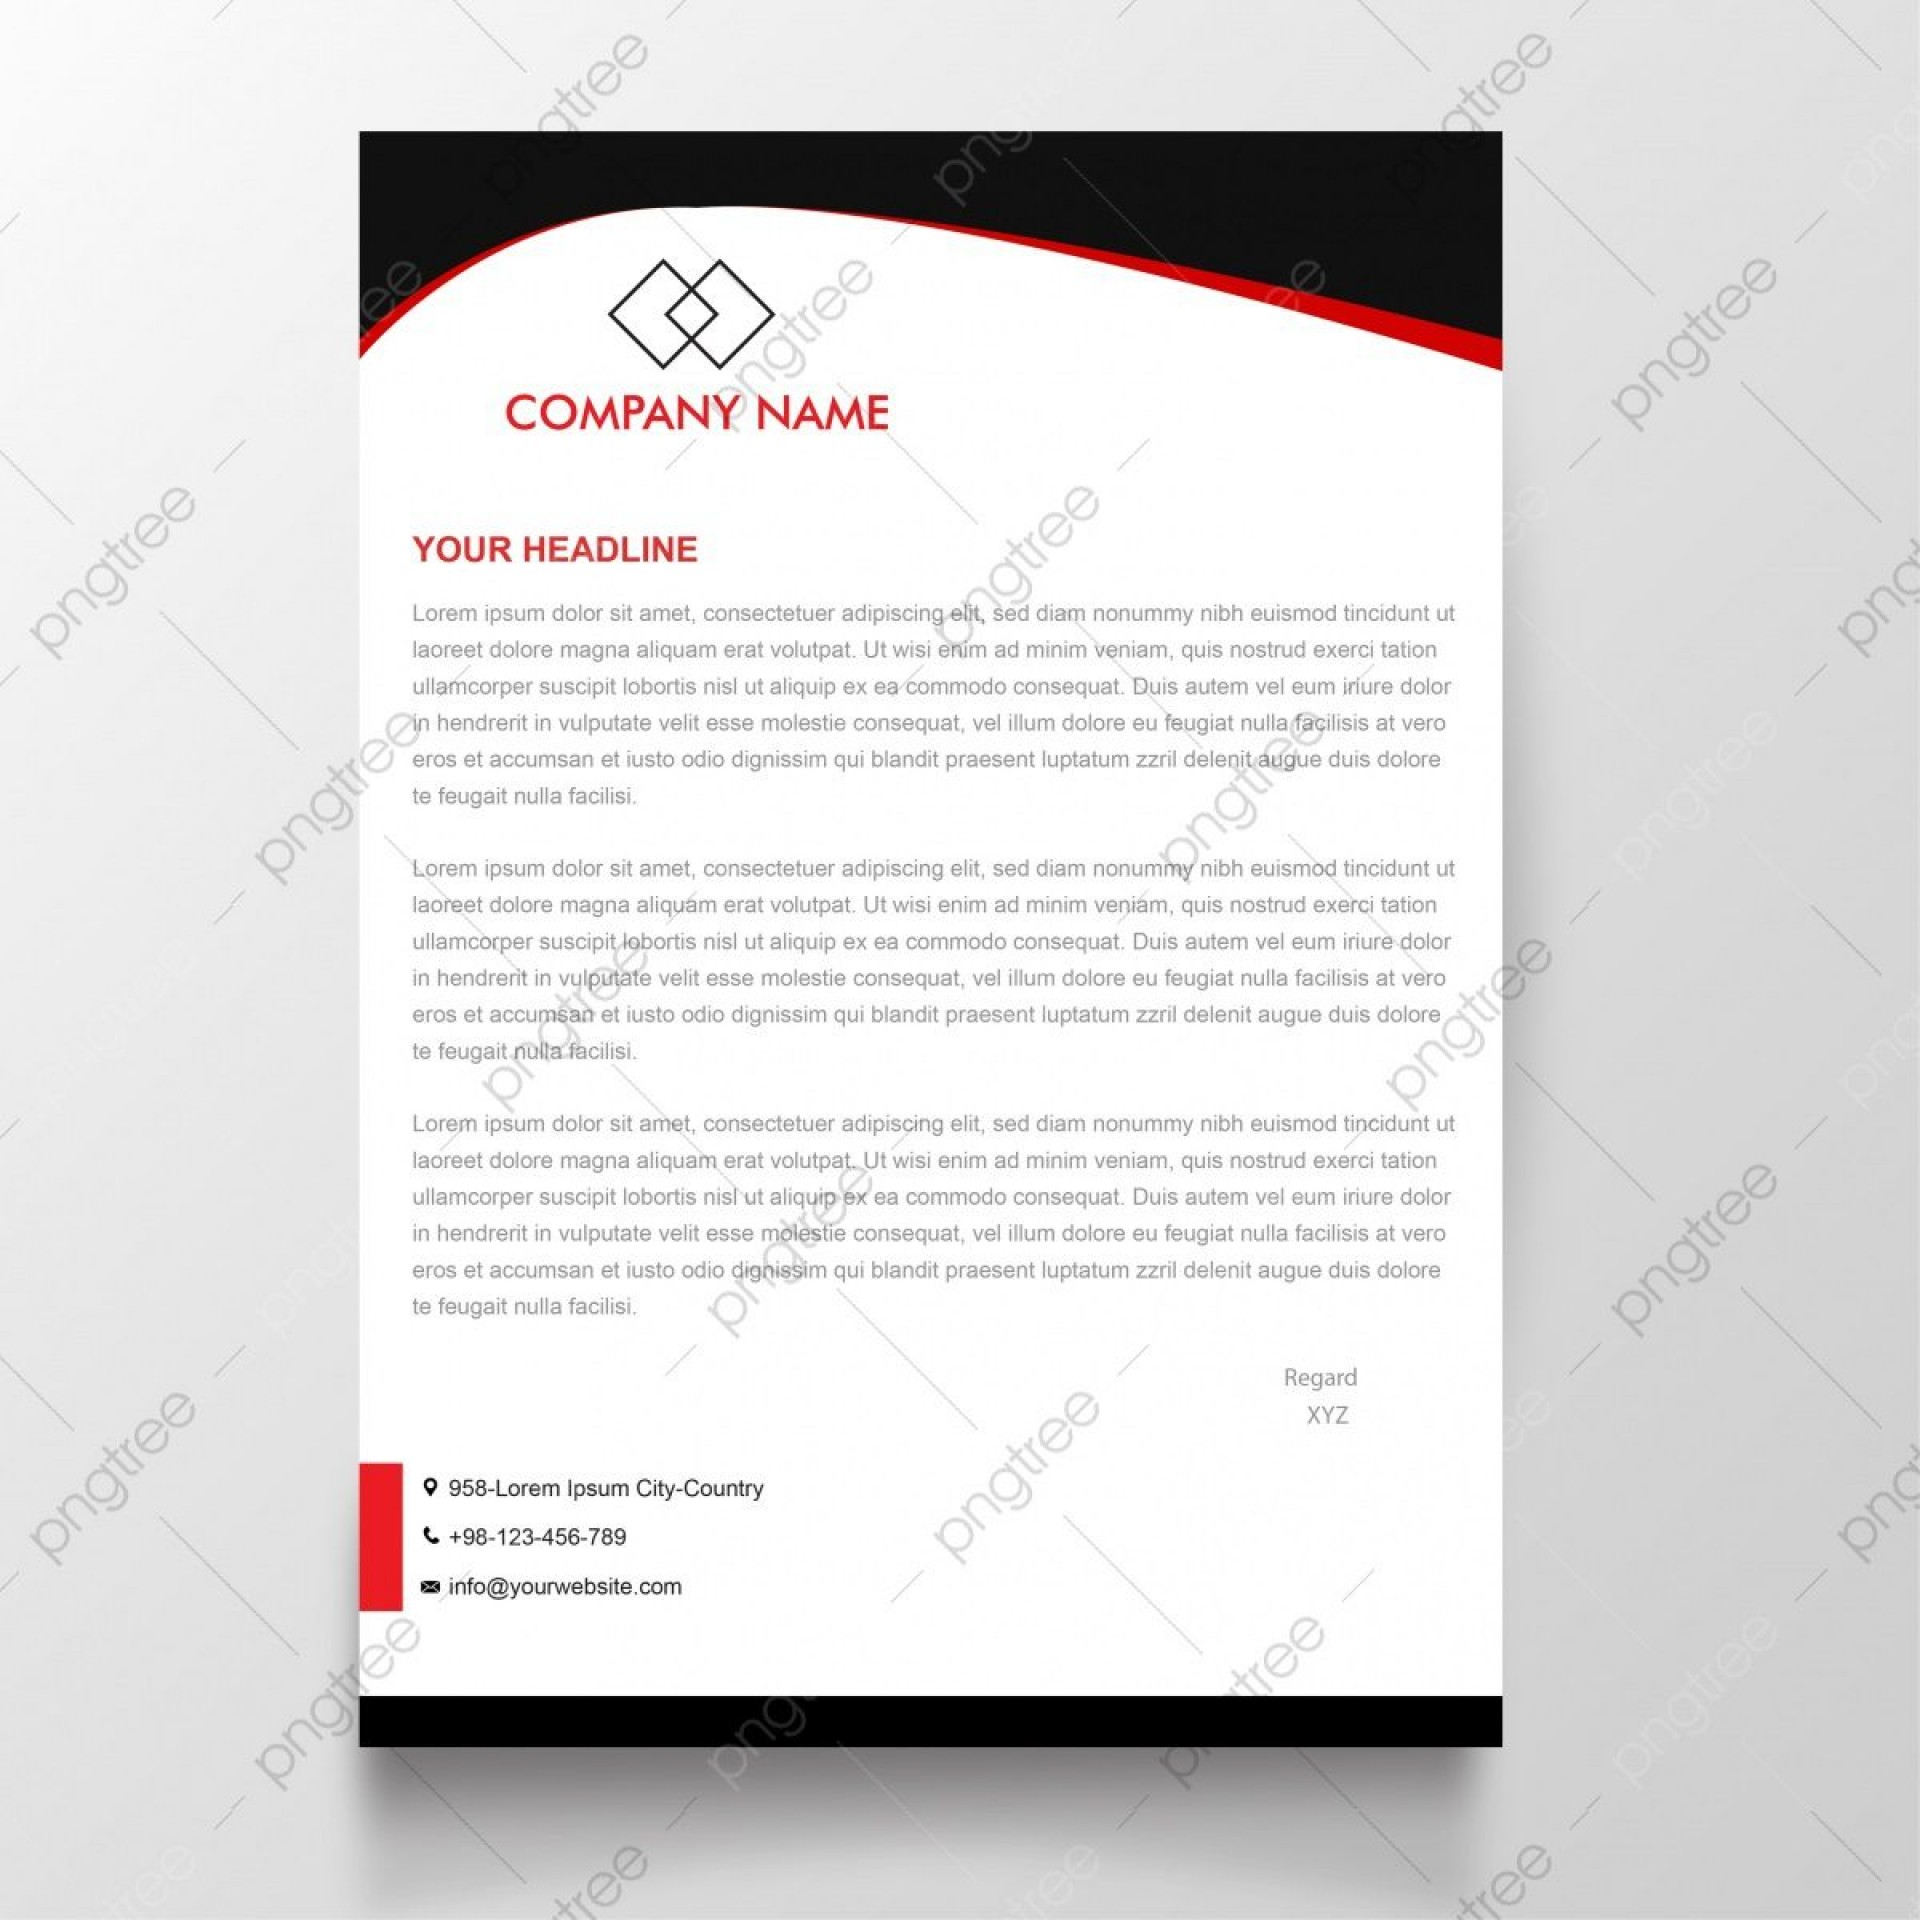 009 Shocking Simple Letterhead Format In Word Free Download Idea 1920